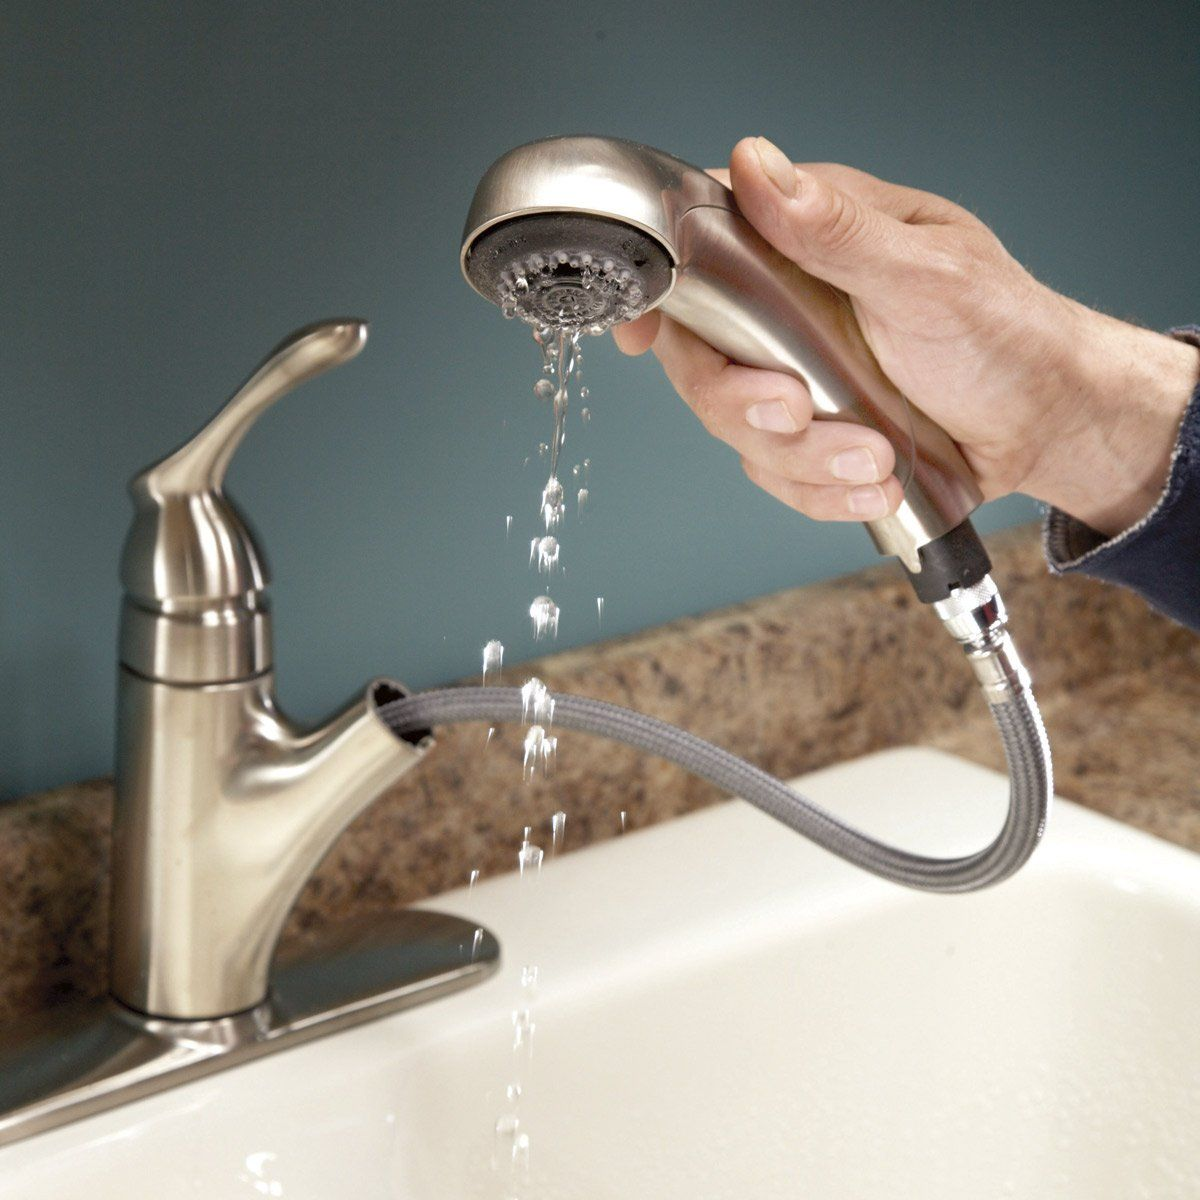 Slow Running Water Unclog The Aerator Faucet Repair Kitchen Faucet Cleaning Faucets [ 1200 x 1200 Pixel ]